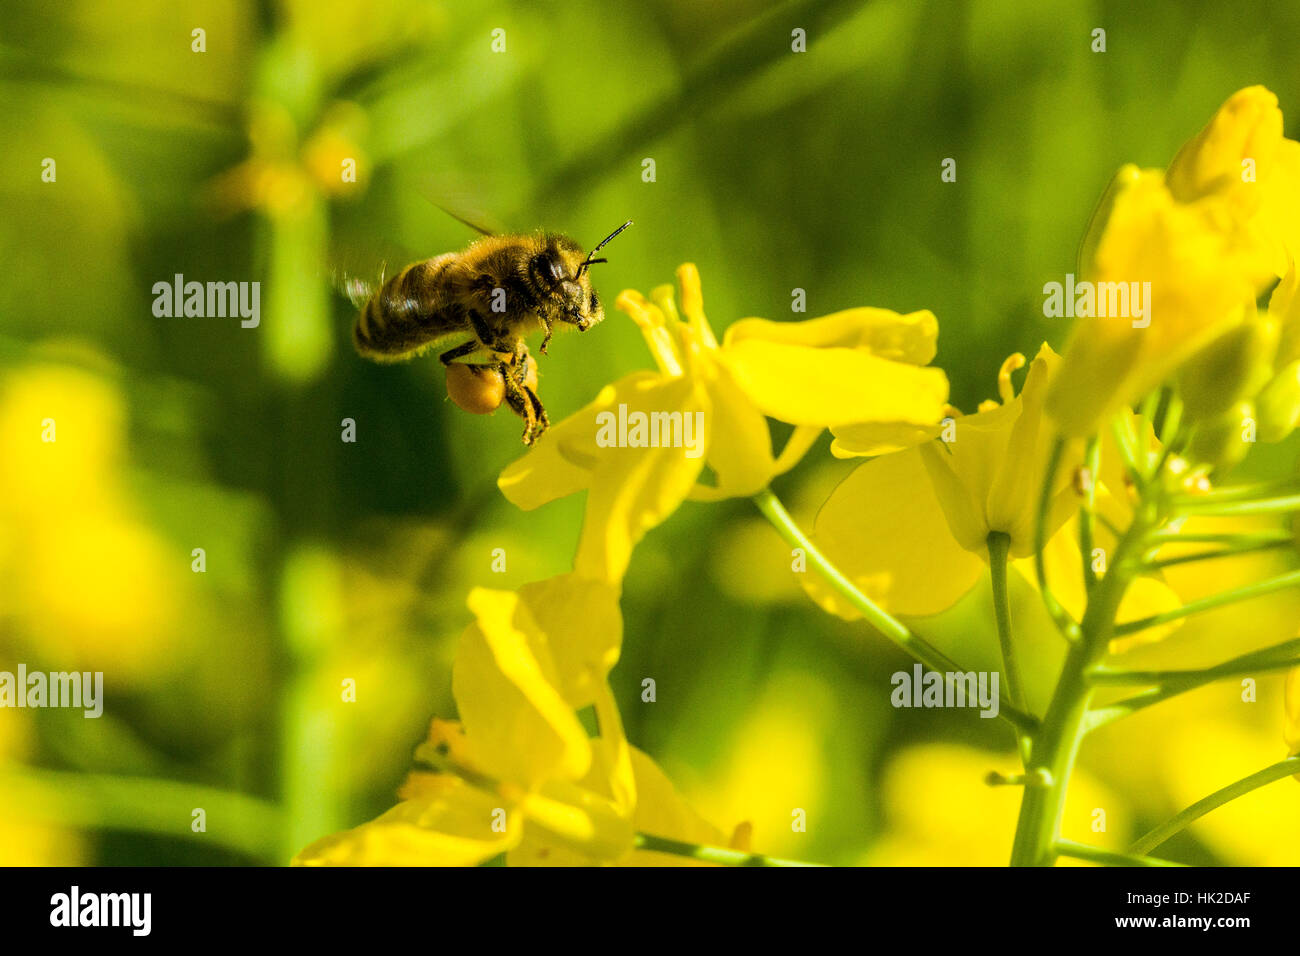 A Carniolan honey bee (Apis mellifera carnica) is collecting nectar at a yellow rapeseed blossom, flying over it - Stock Image